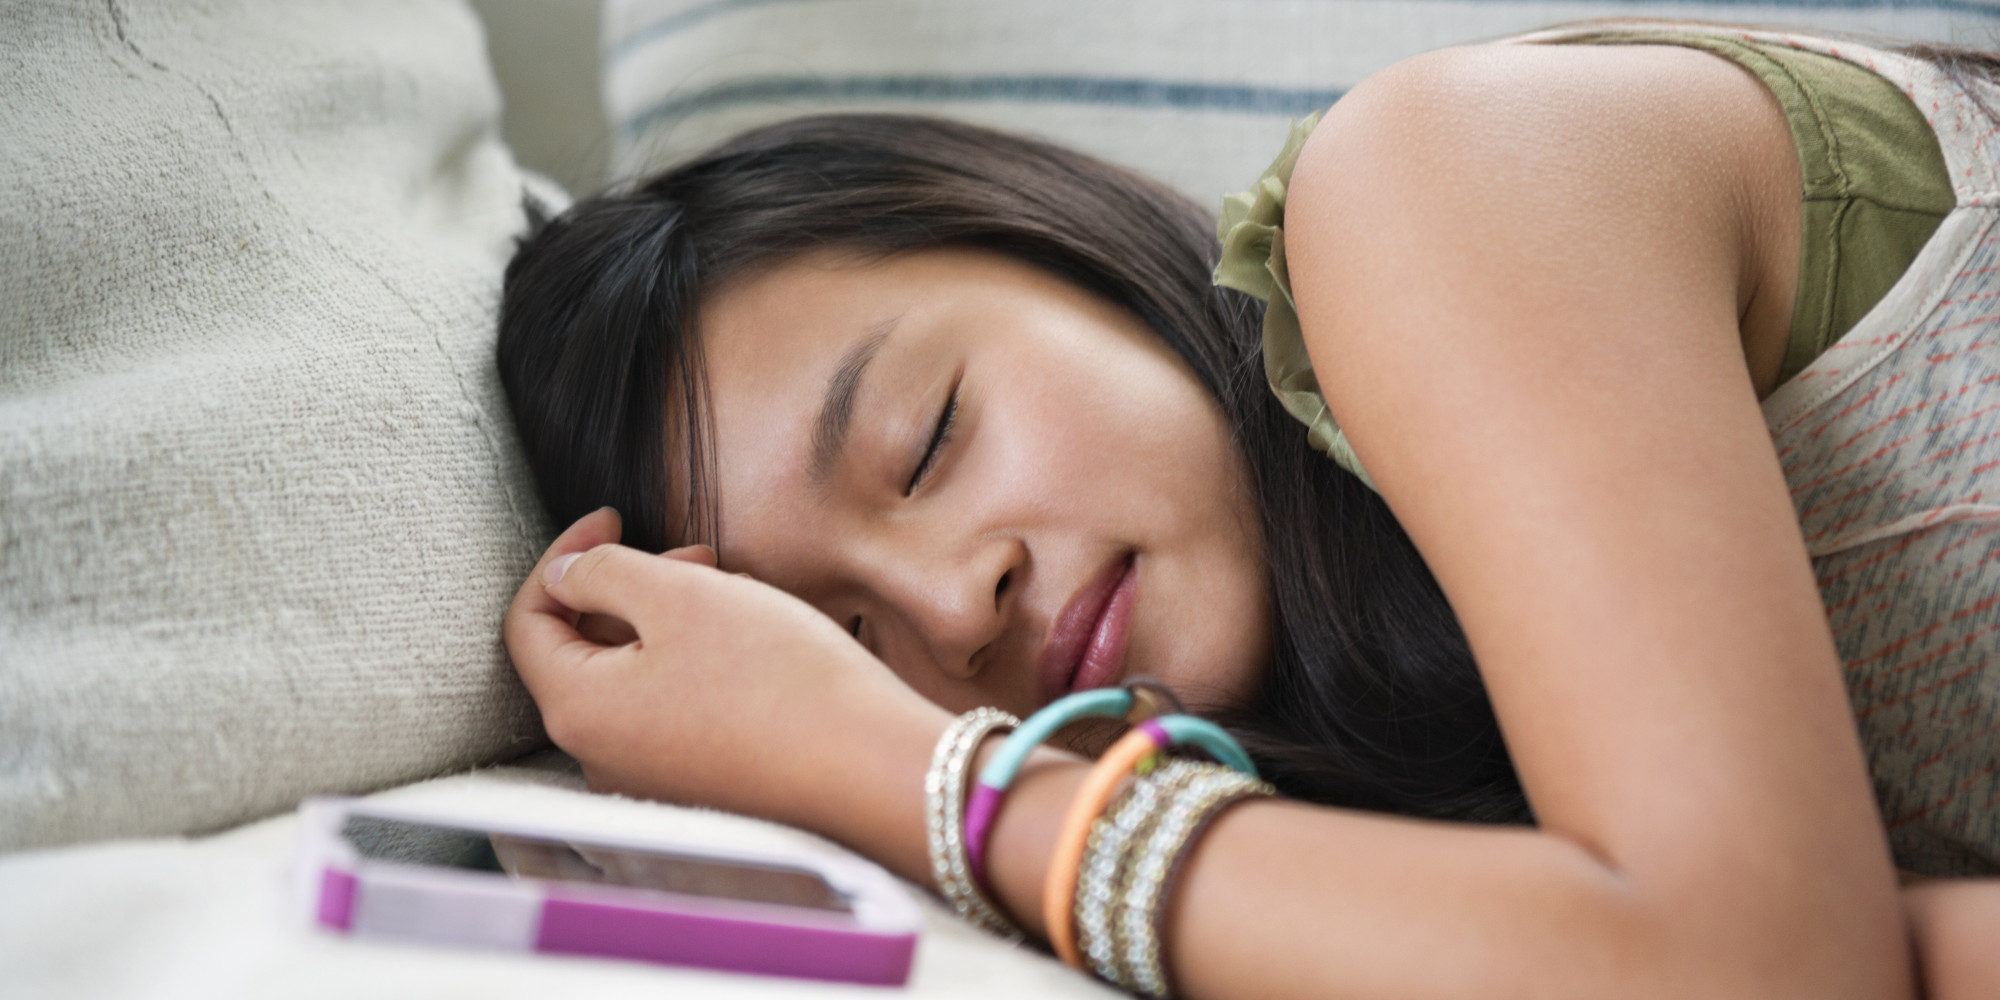 Teen Needs More Sleep Is 56